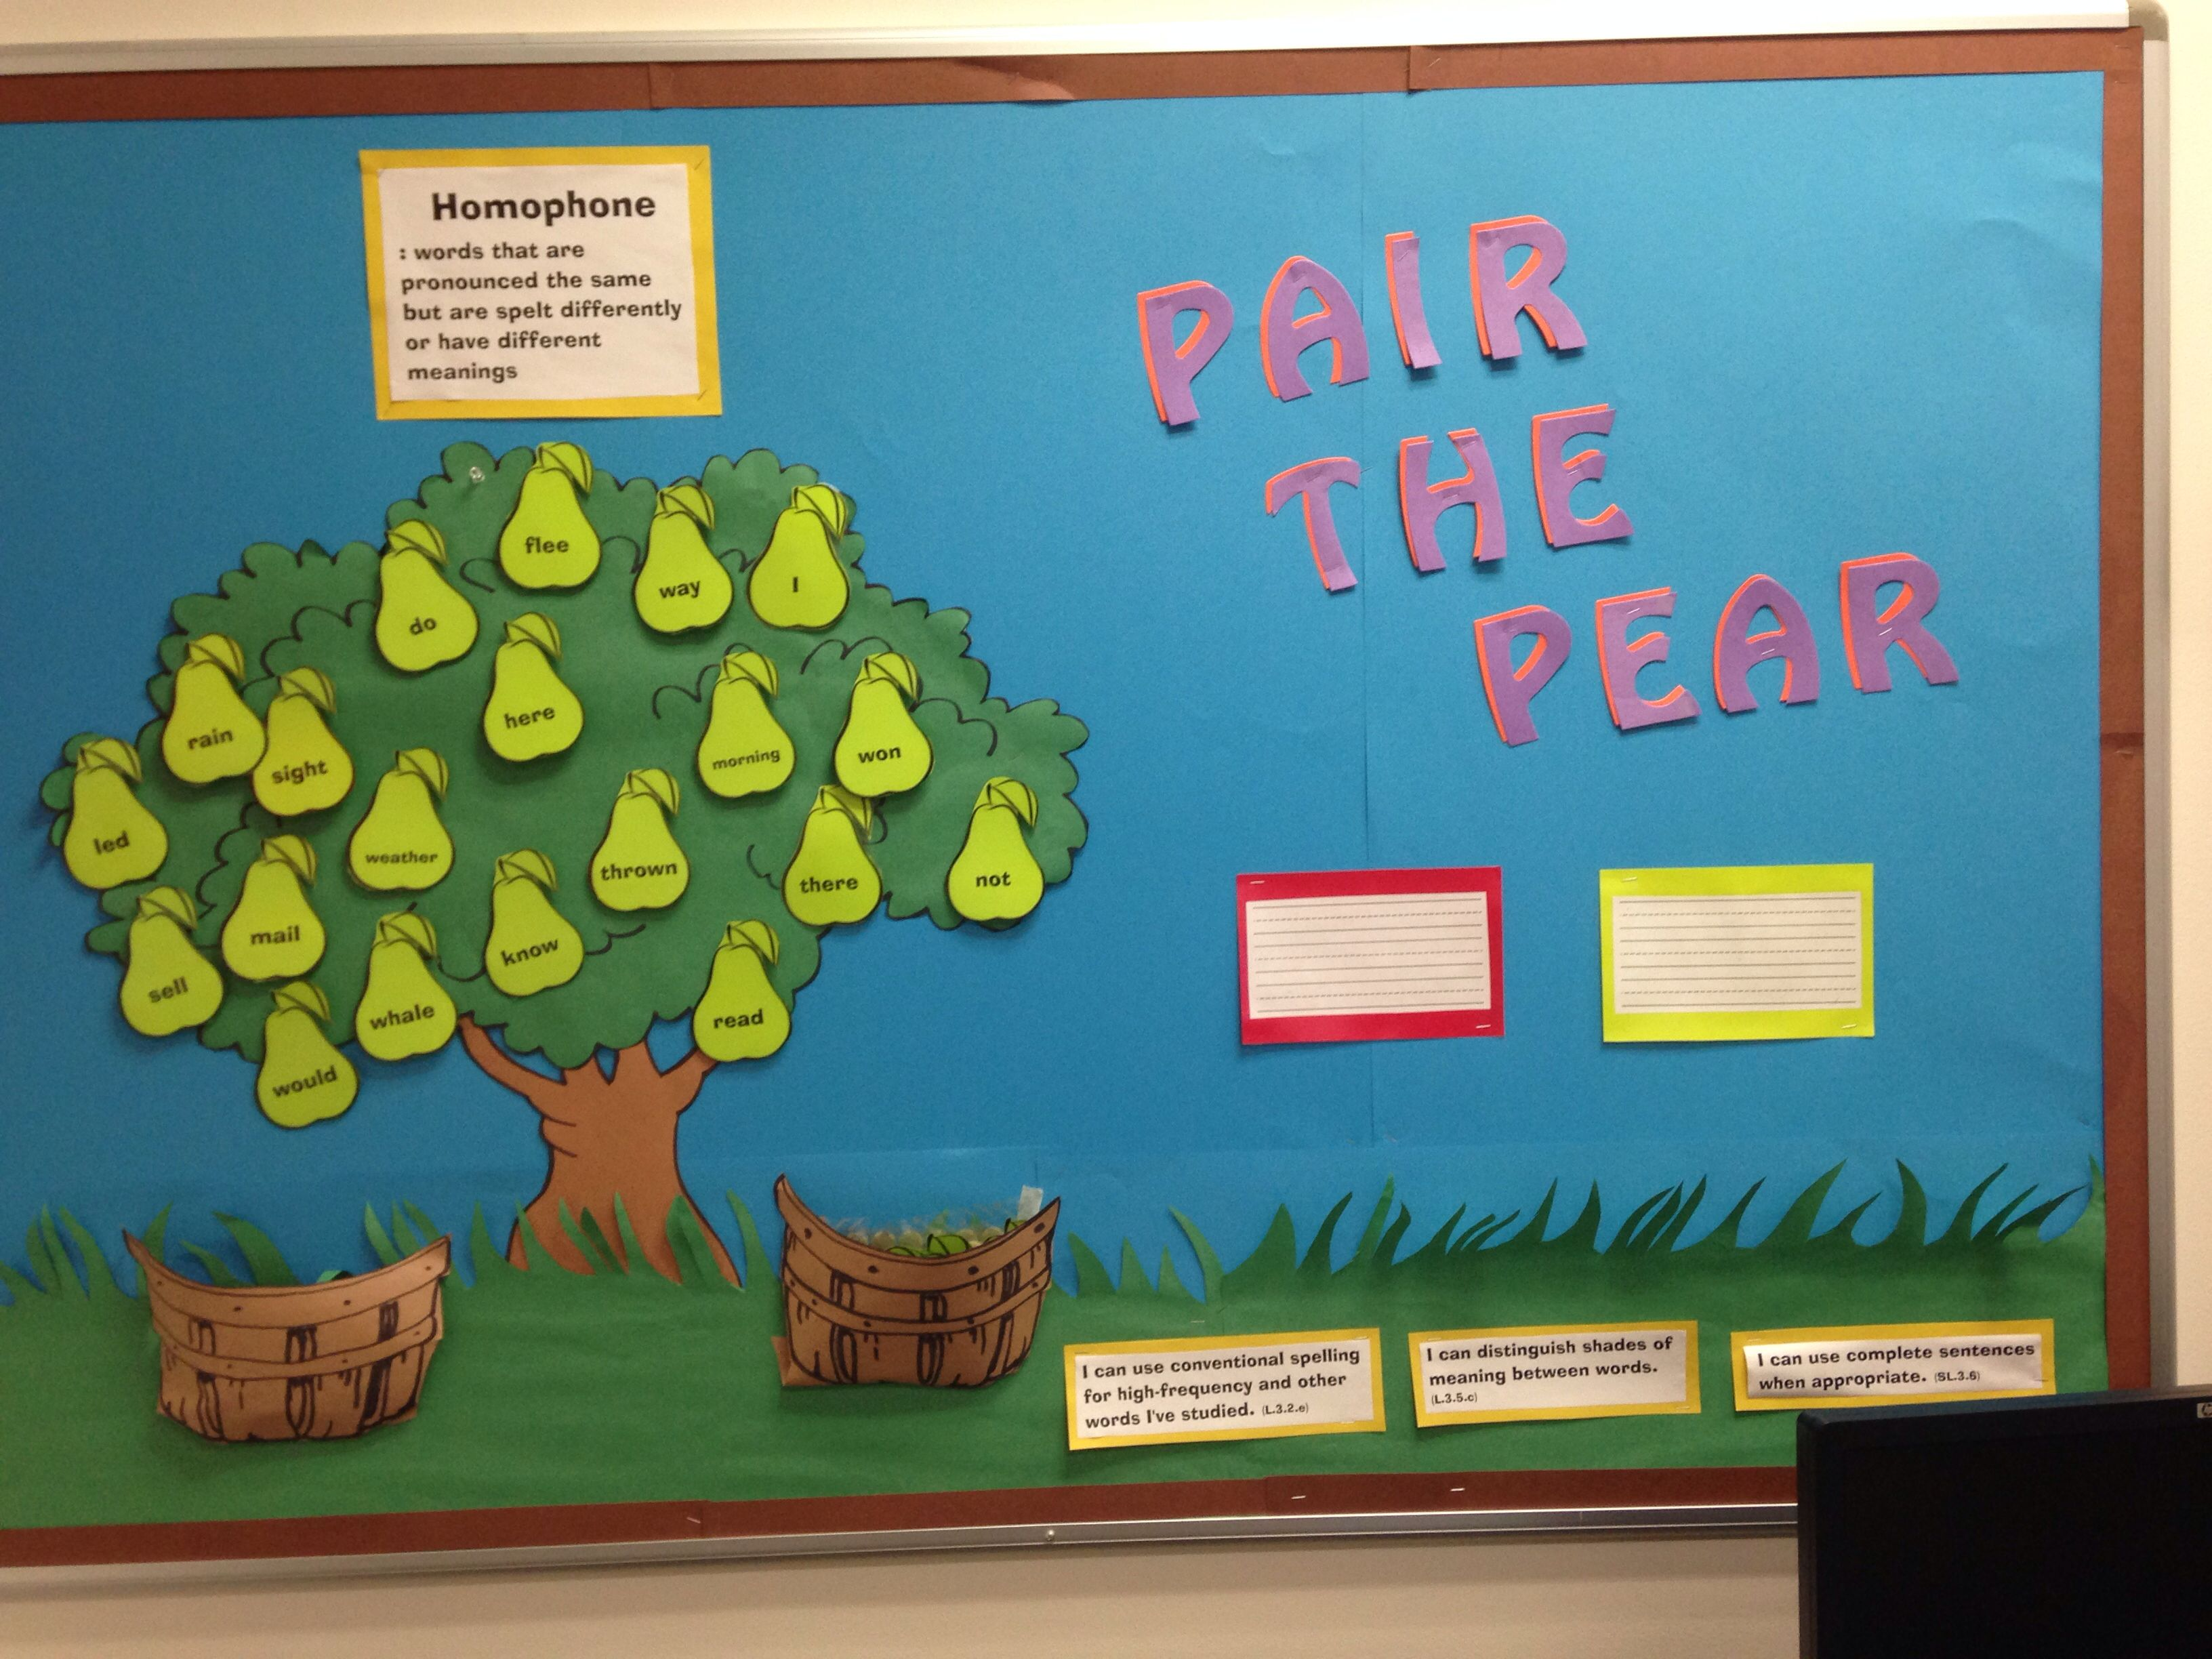 Classroom Interactive Ideas : Pair the pear interactive bulletin board about homophones